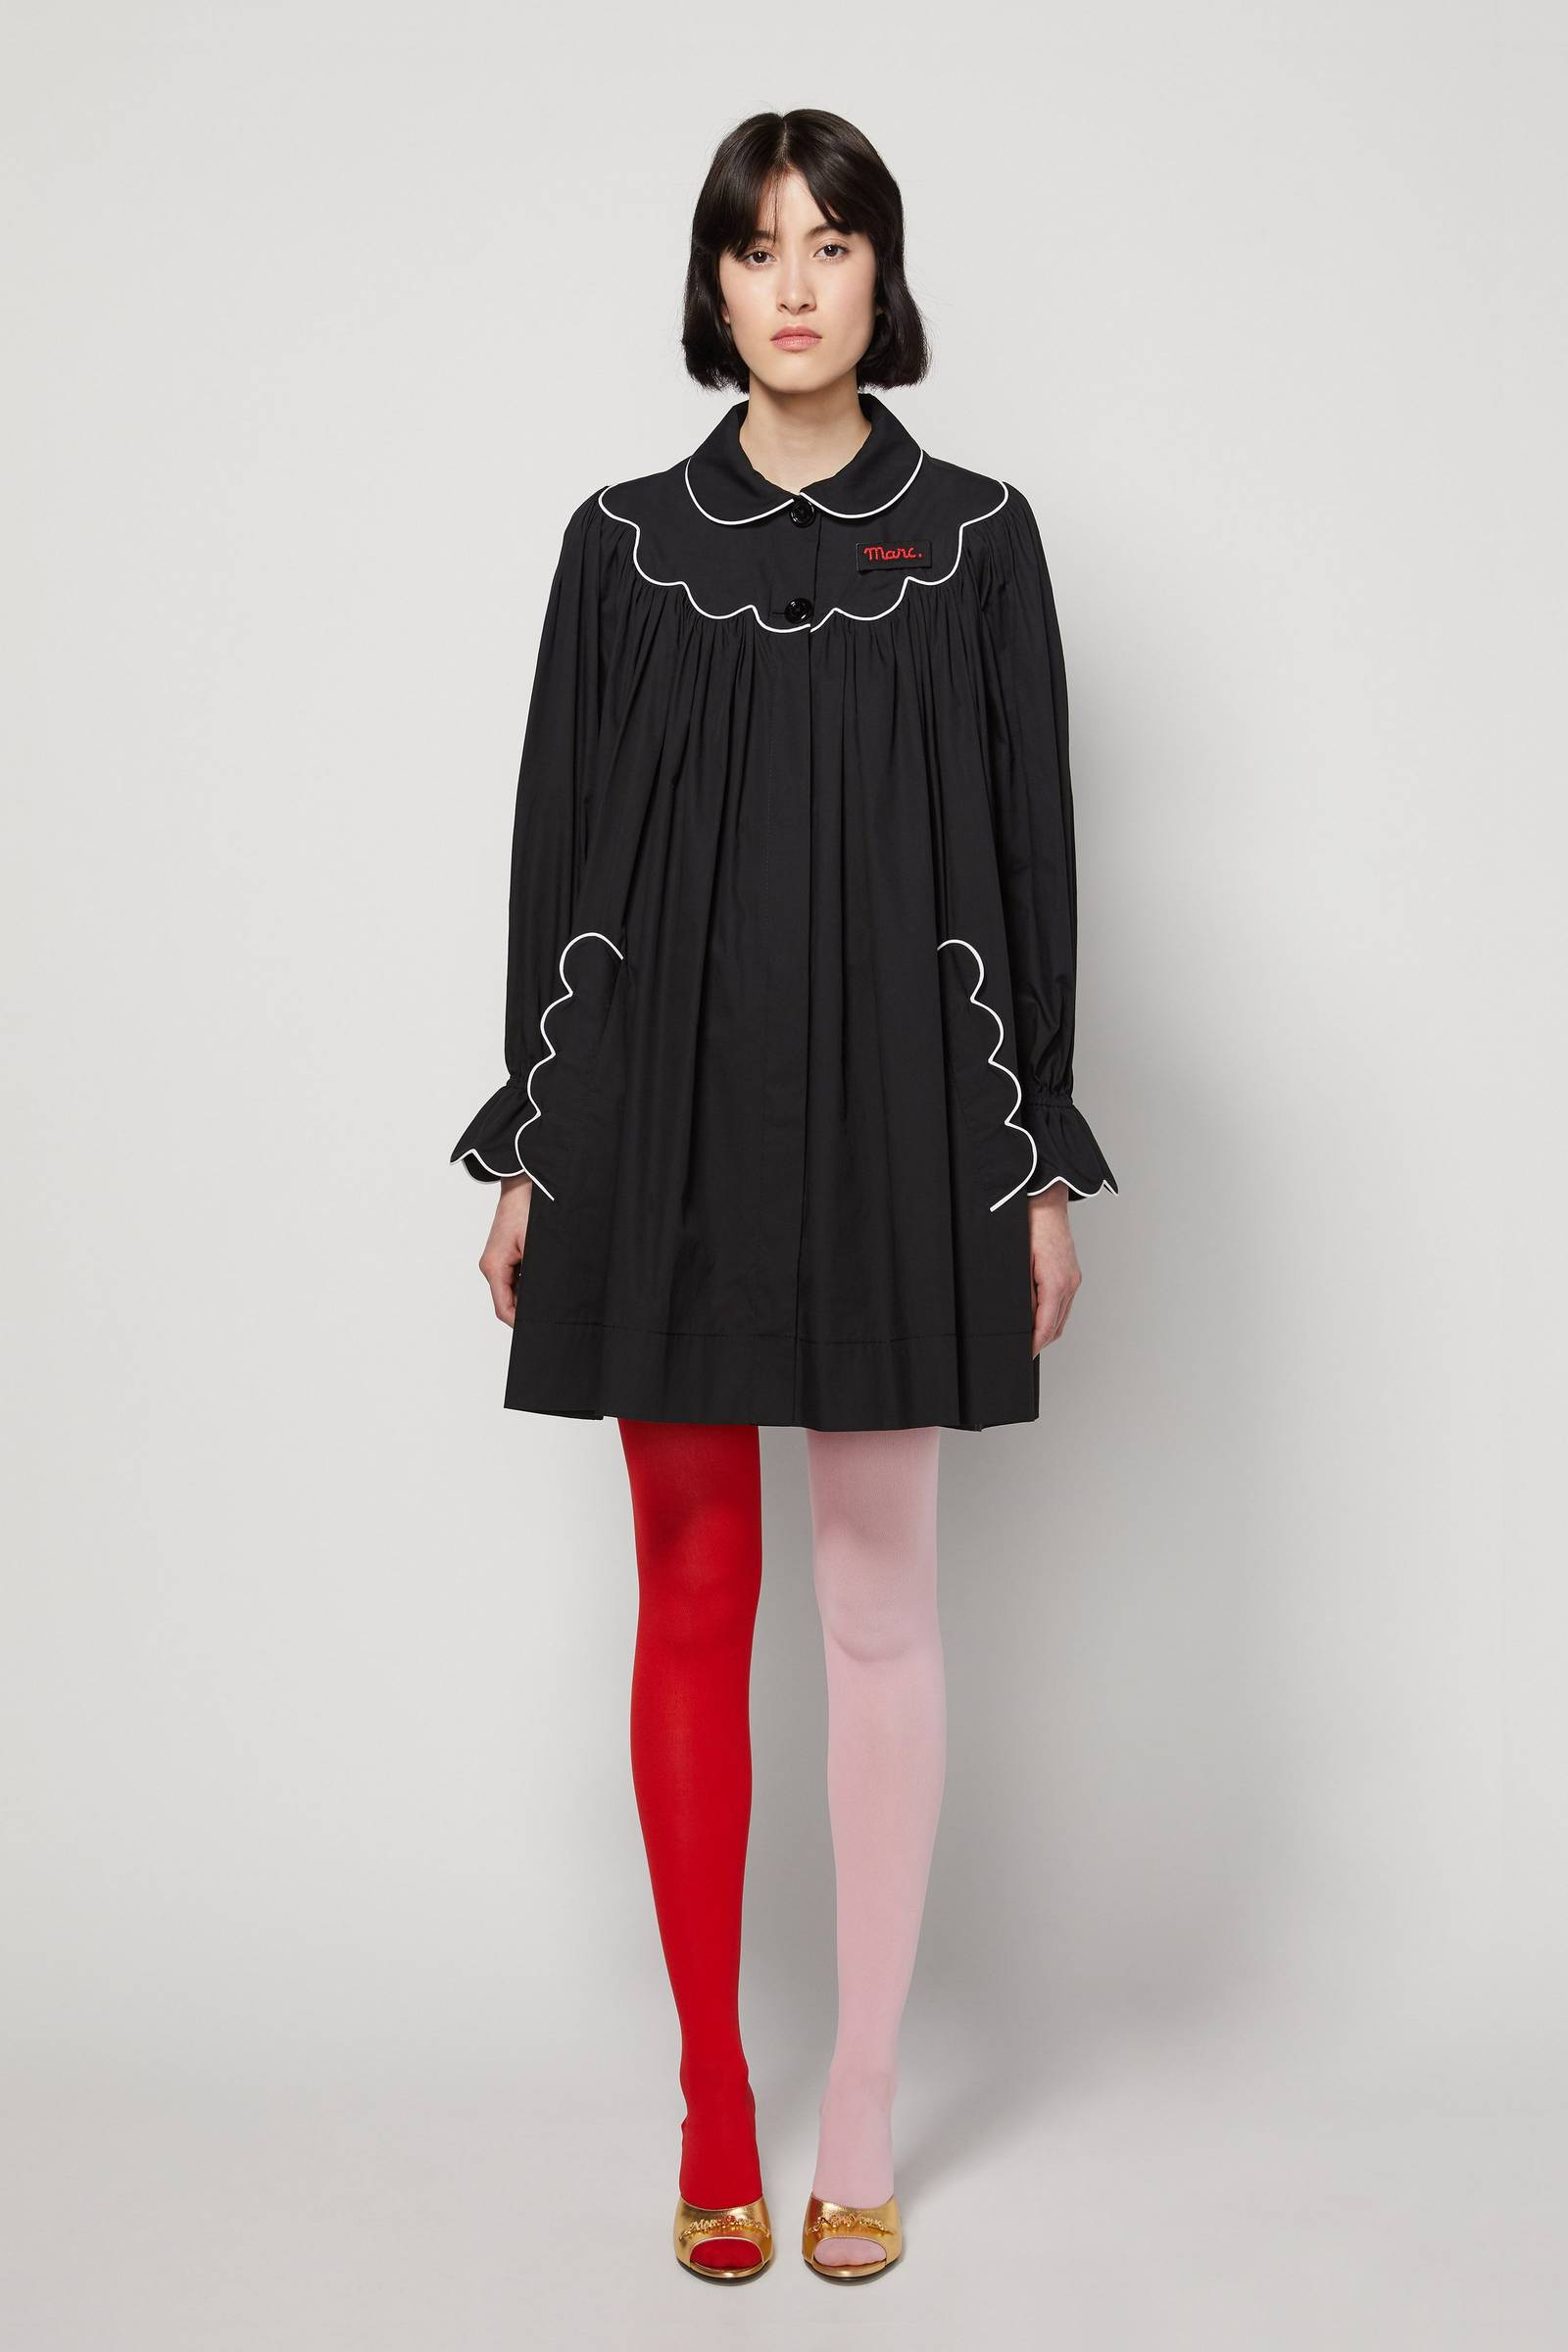 The Smock Dress by The Marc Jacobs